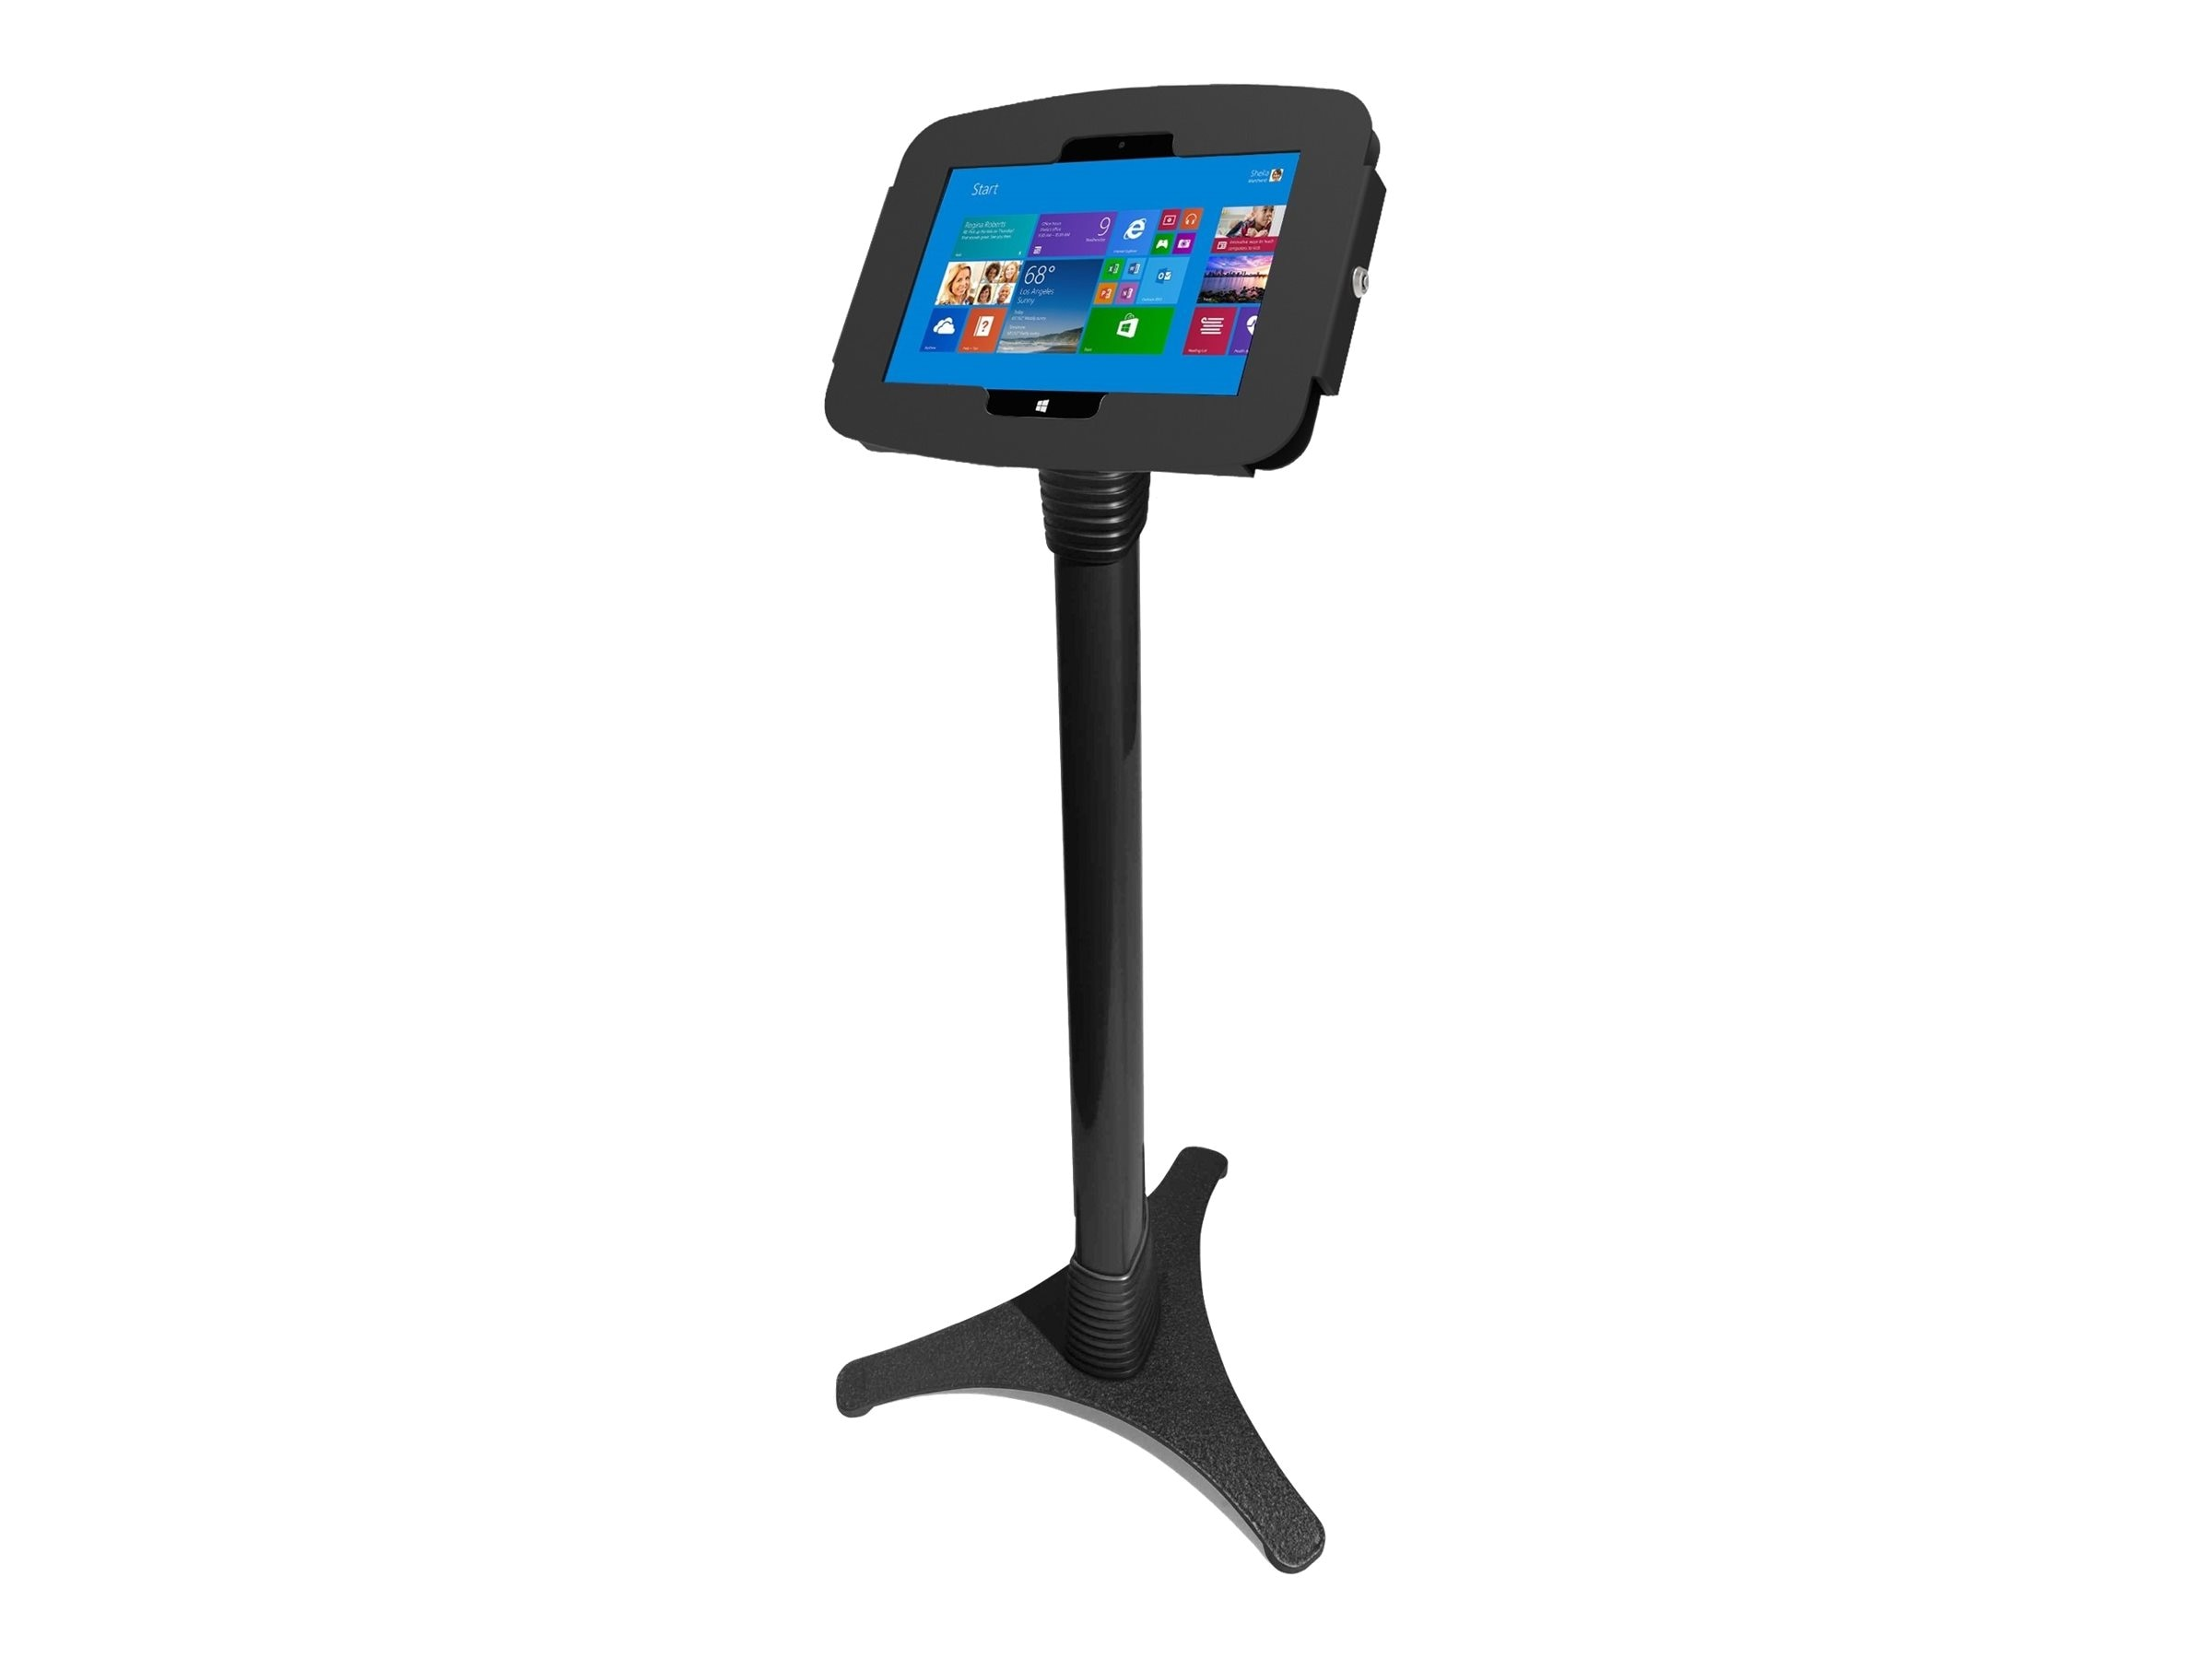 Compulocks Surface Pro 3 Space Adjustable Stand, Black, 147B530GEB